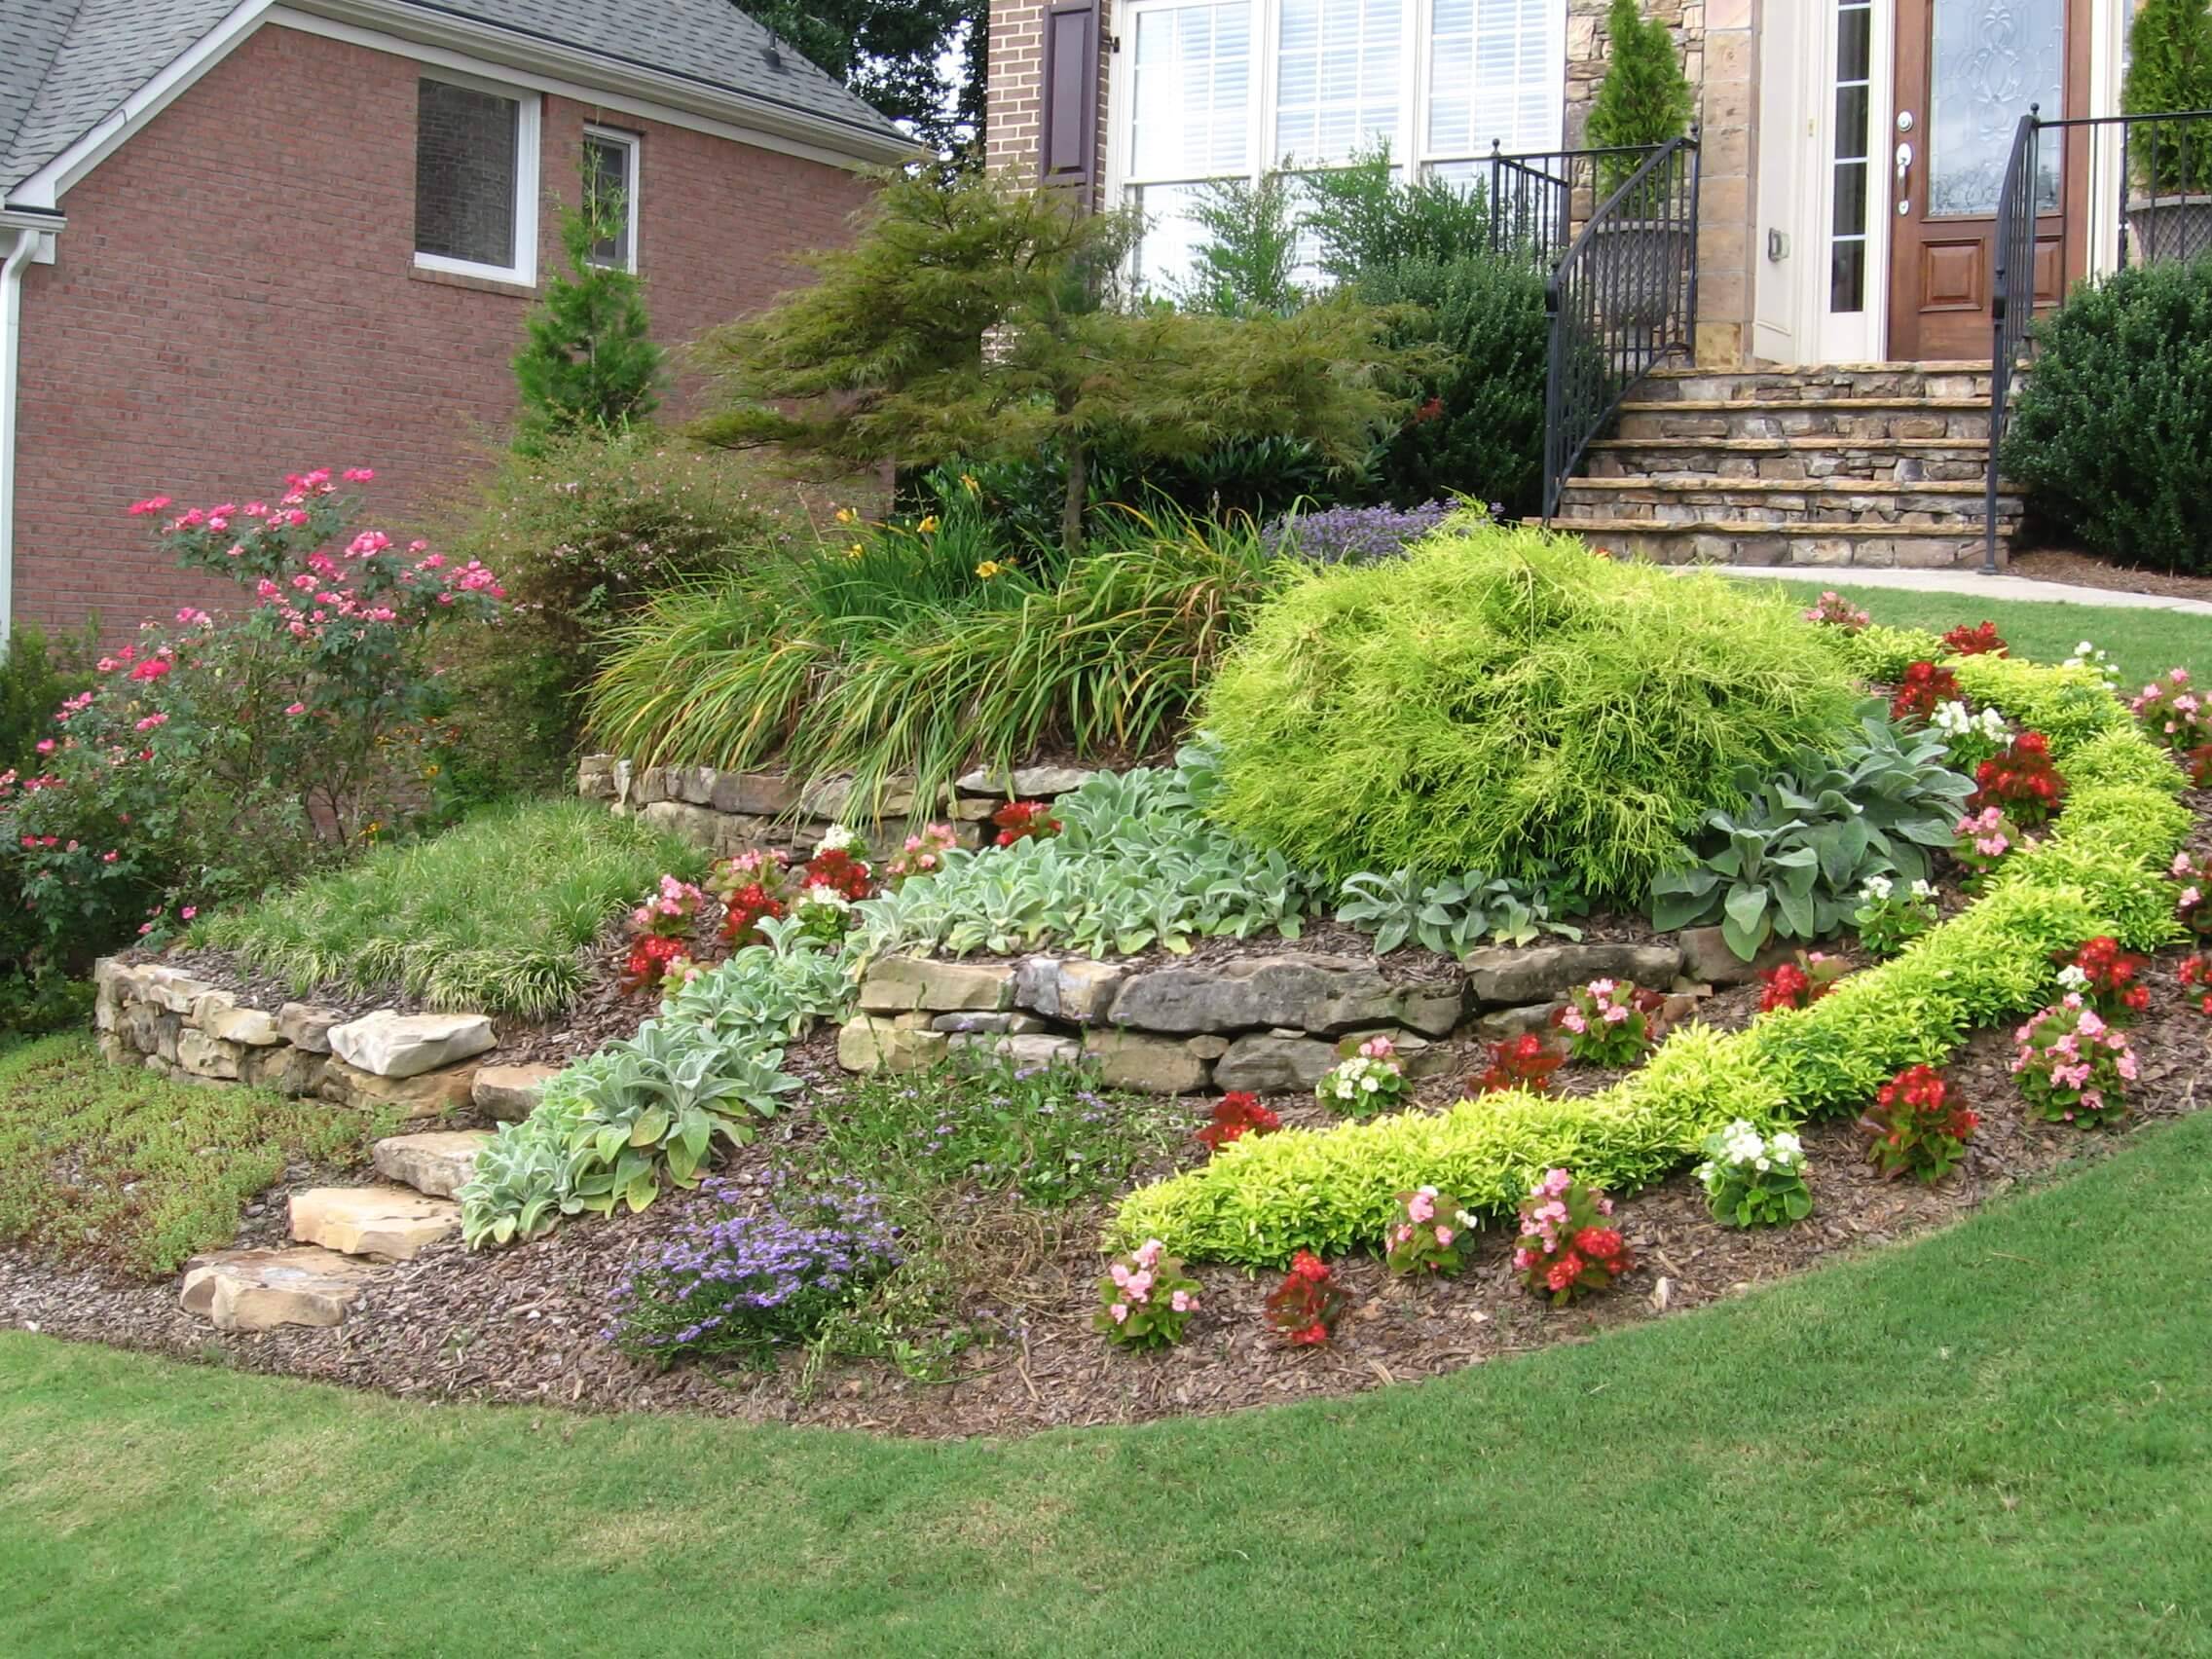 Residential Landscape Design  Make Your Yard the Most Beautiful on the Block